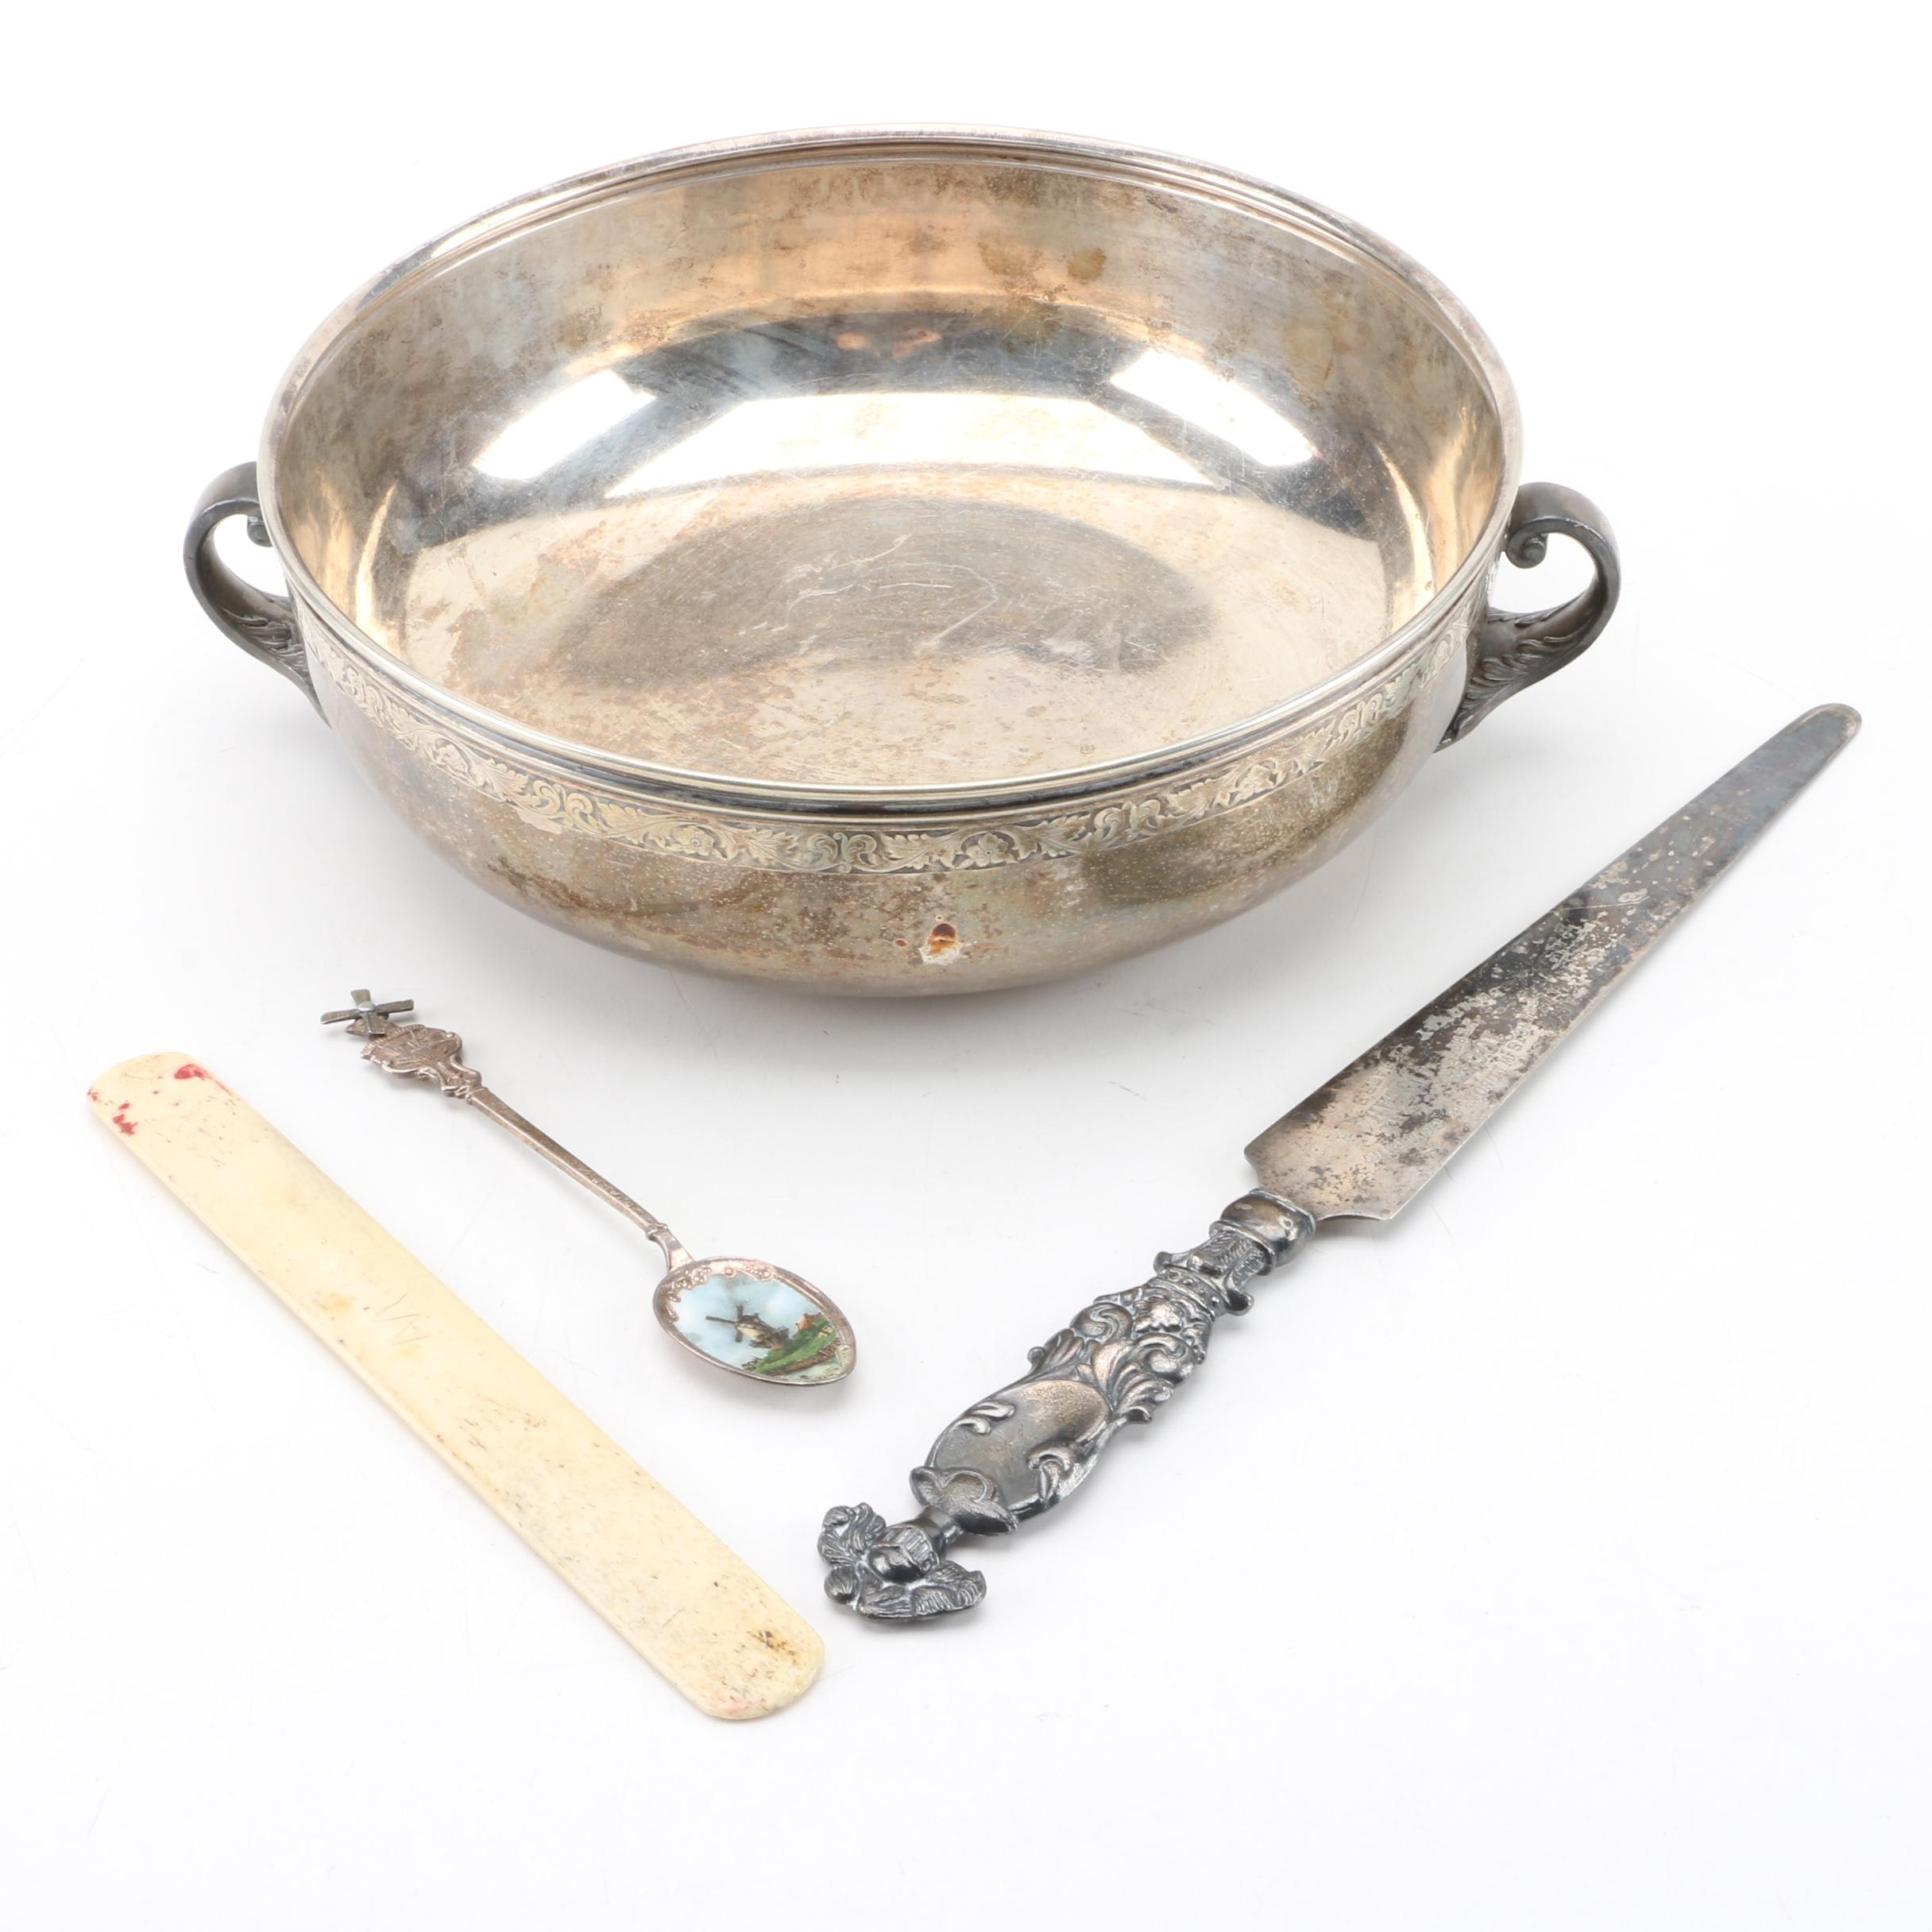 1933 Womens Tennis Trophy, Letter Openers and Collector Spoon